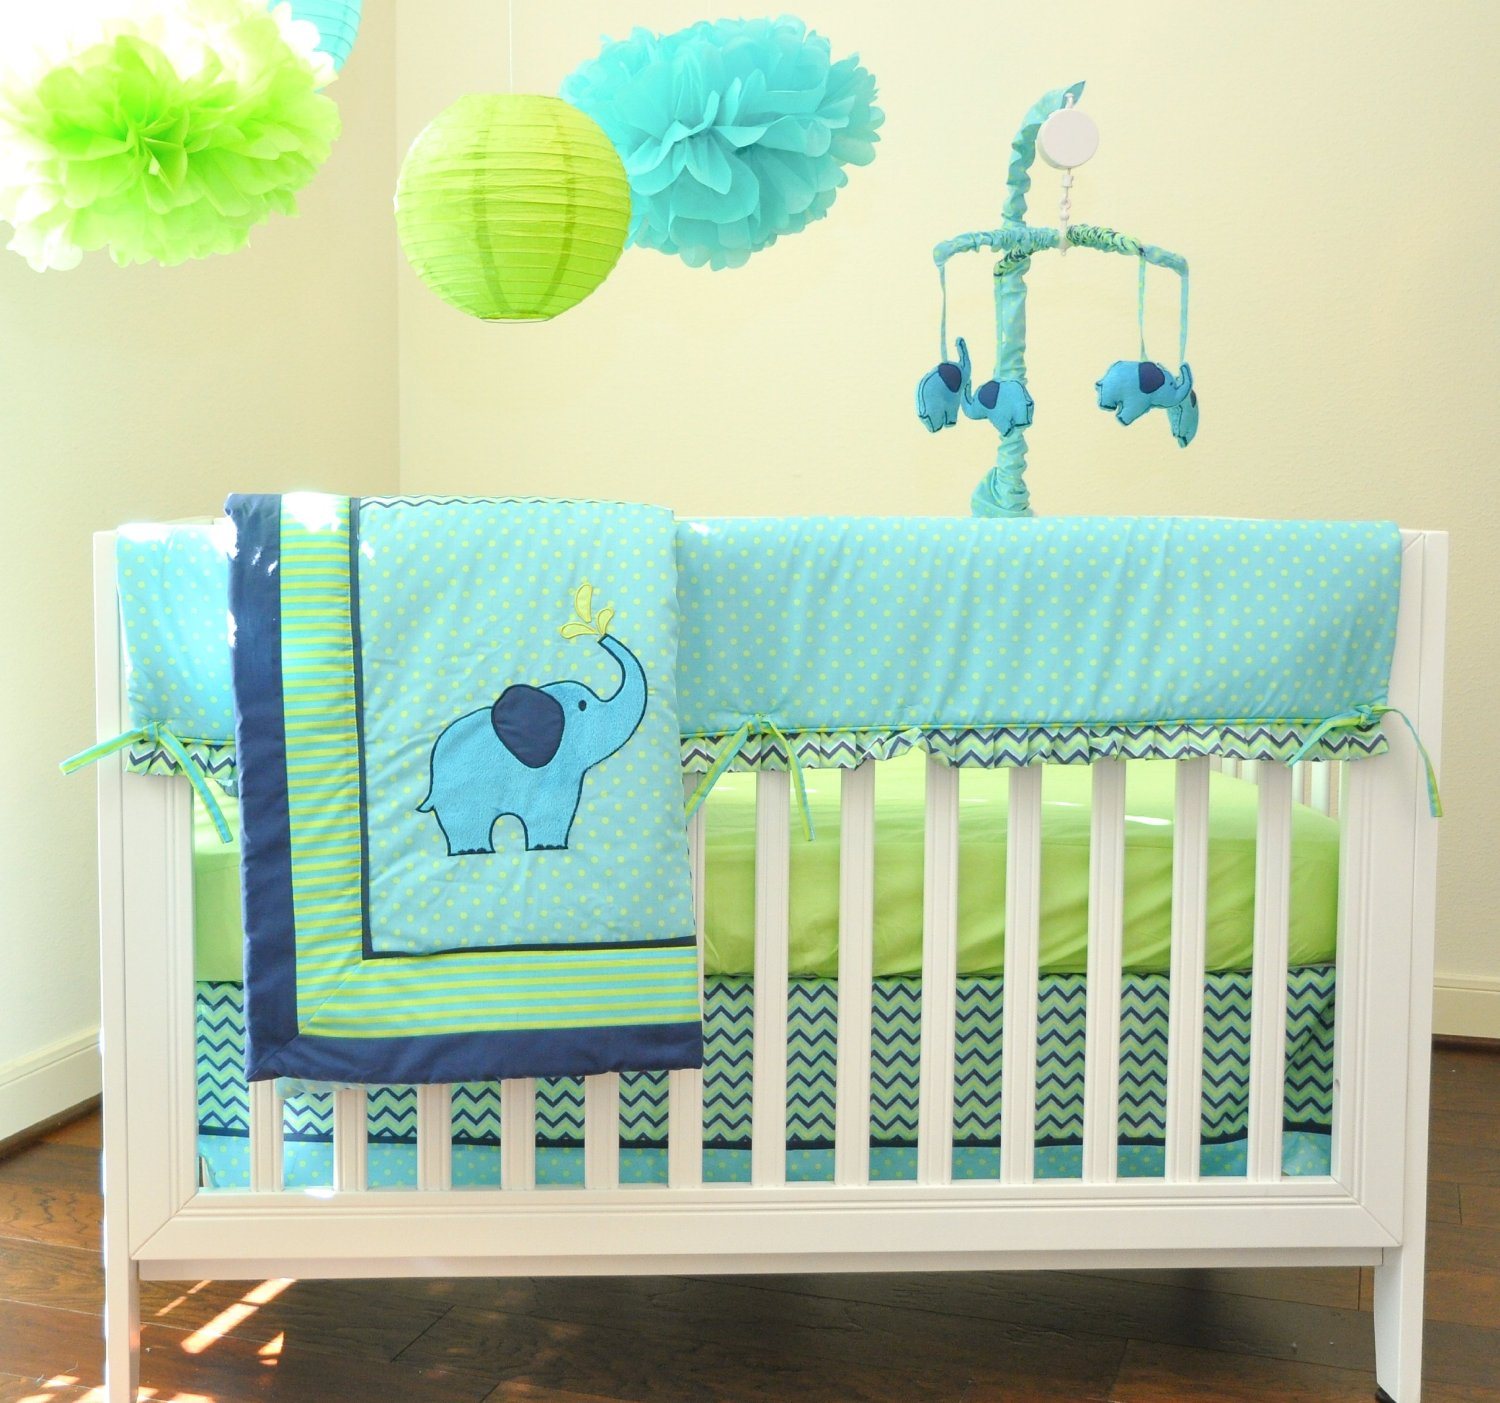 Baby Crib with Changing Table | Cribs at Walmart | Cheap Cribs